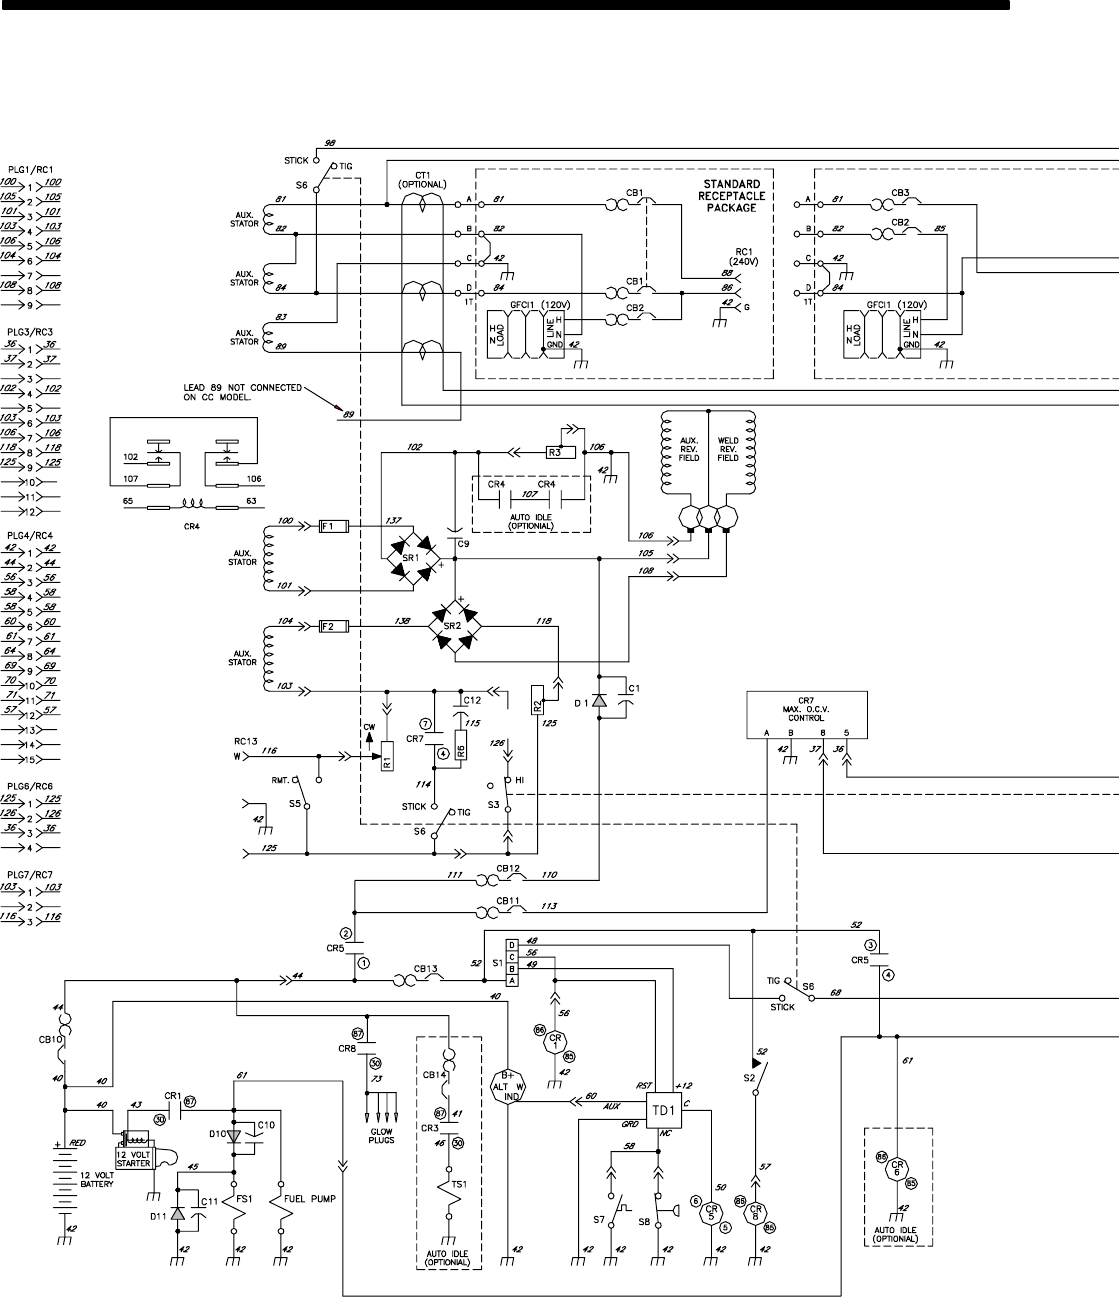 b1e65127 79fe 4040 be02 9acf903a51bc bg38 miller big 40 welder wiring diagram miller welders parts miller bluestar 2e wiring diagram at edmiracle.co